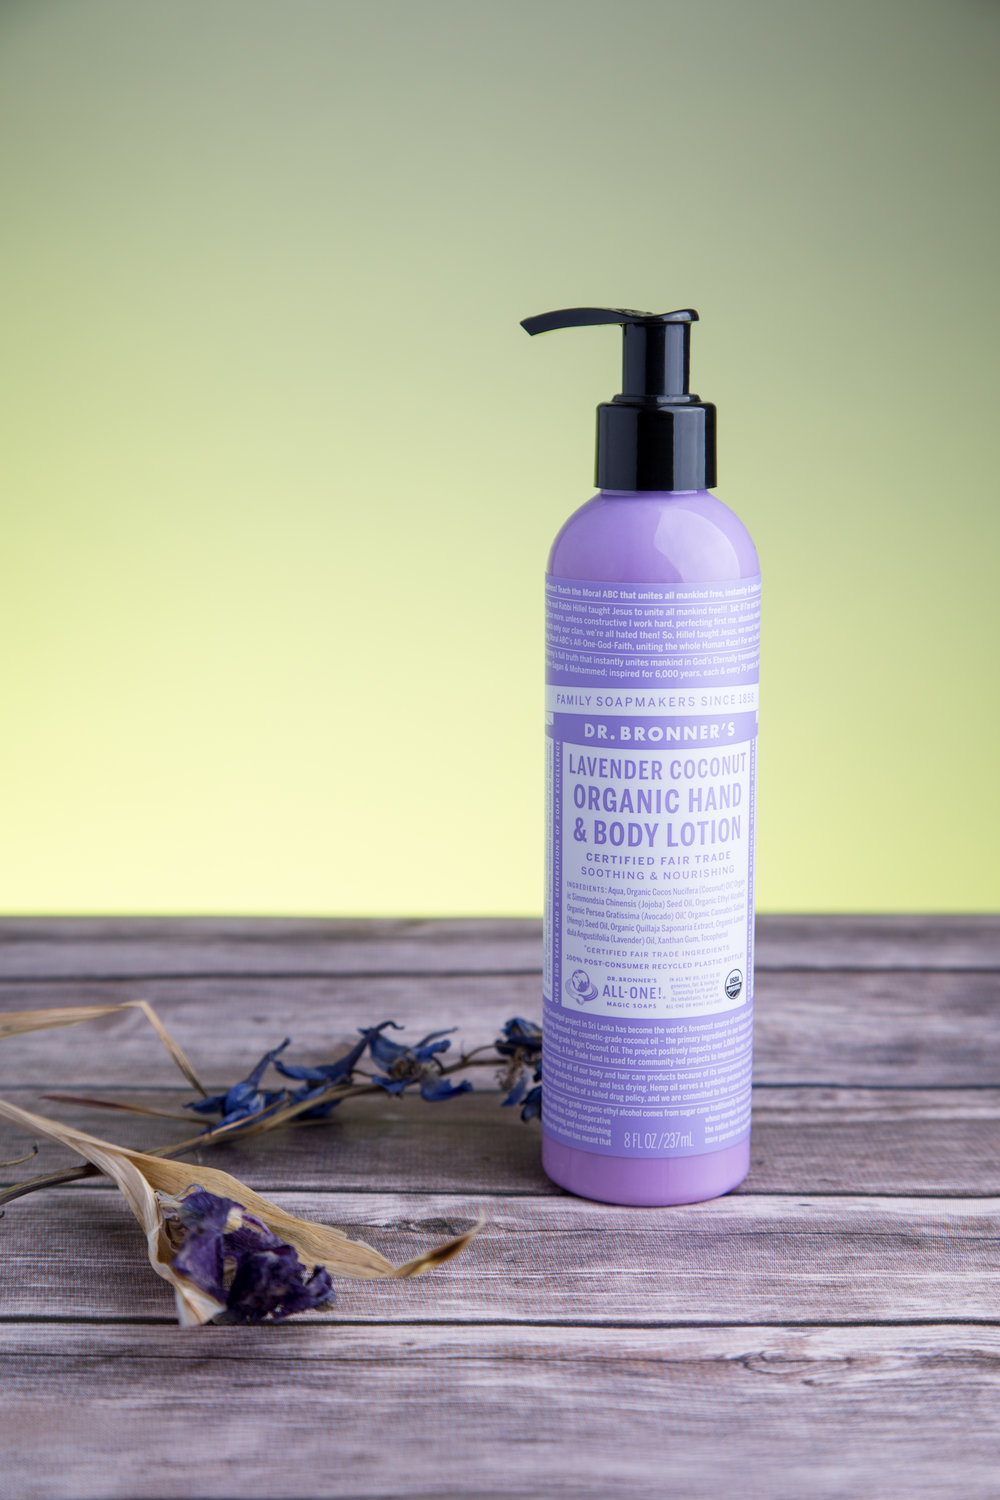 Dr. Bronner's Lavender Coconut Hand & Body Lotion